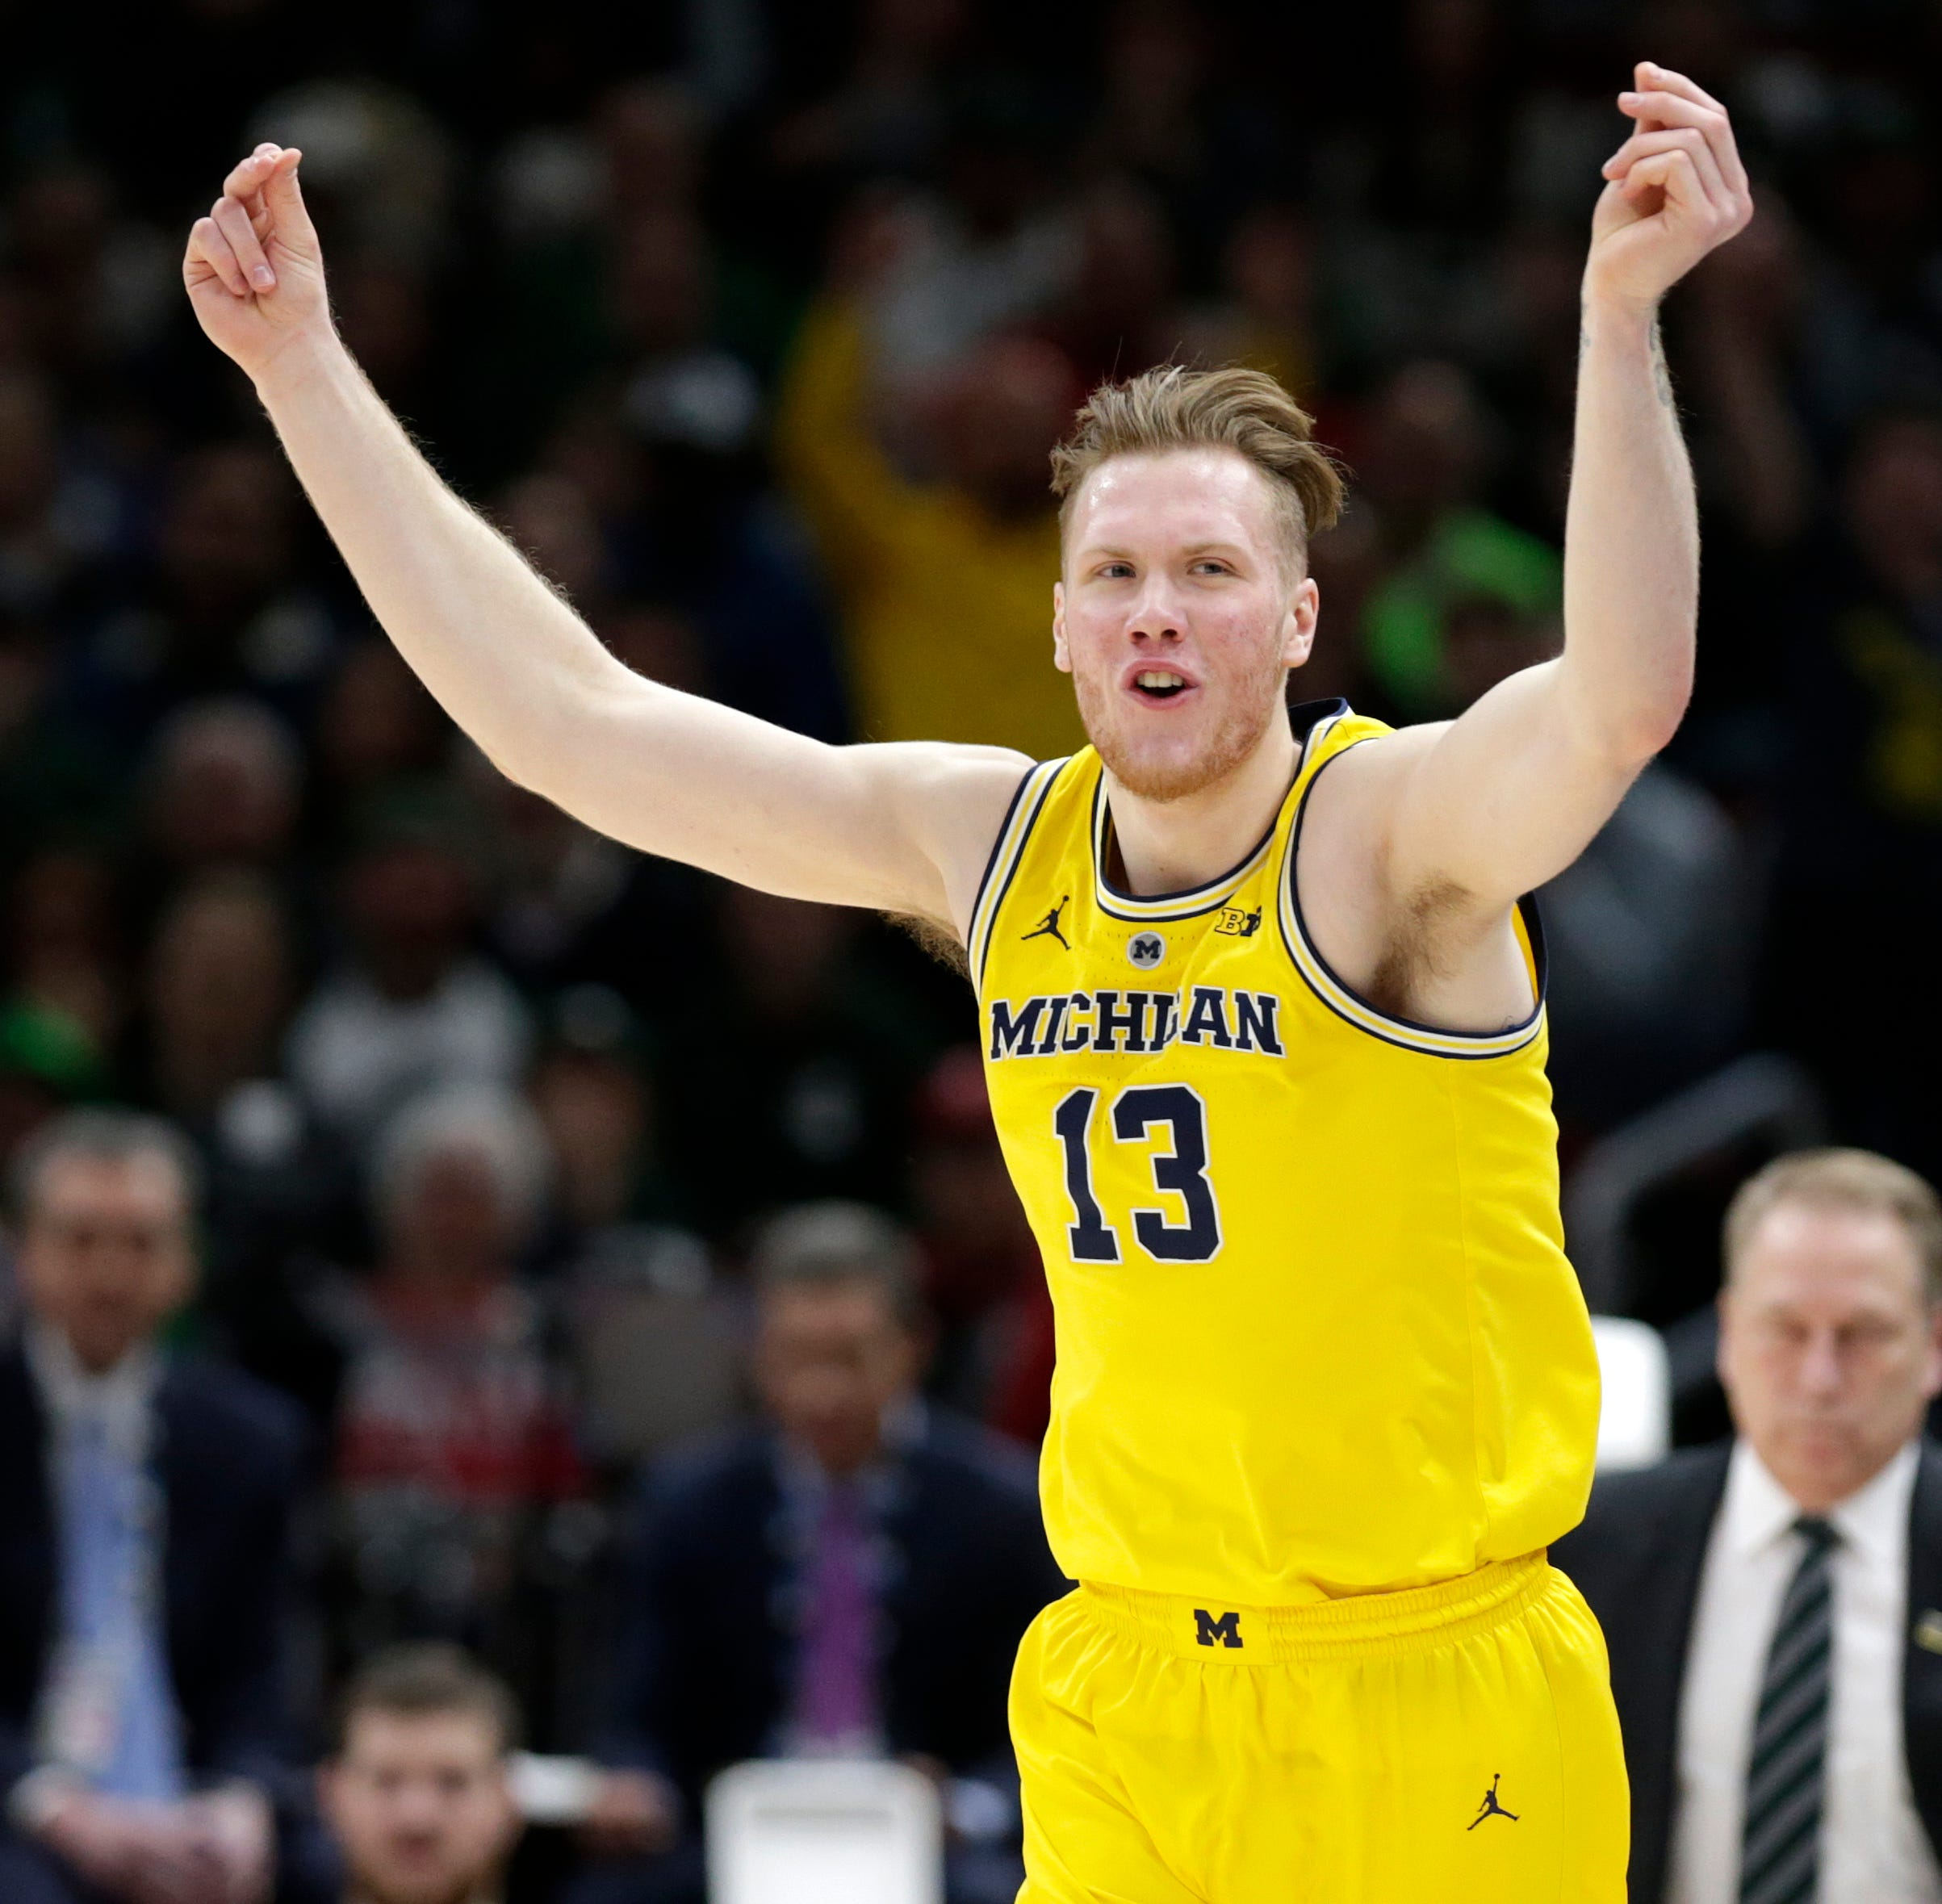 Michigan basketball a 2 seed in NCAA tournament, opens against Montana